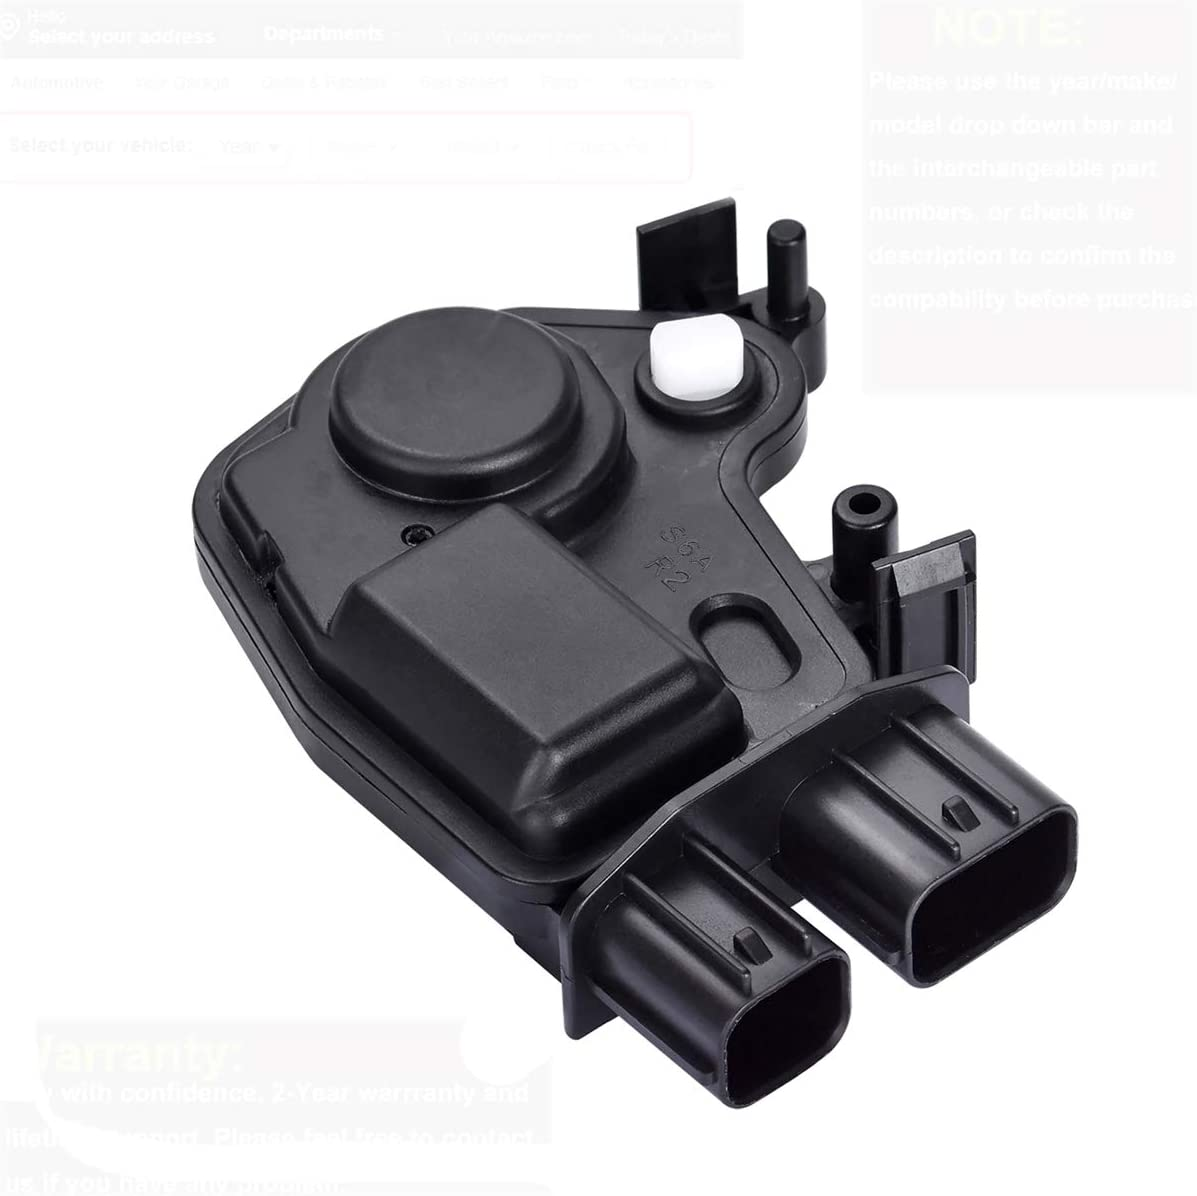 2002-2006 Acura RSX Replace 72155-S5P-A11,72115-S6A-J01,746301,746302 FAERSI Door Lock Actuator Motor Front Left and Right Compatible with 2003 2004 2005 Honda Accord Civic CR-V Element Odyssey Pilot